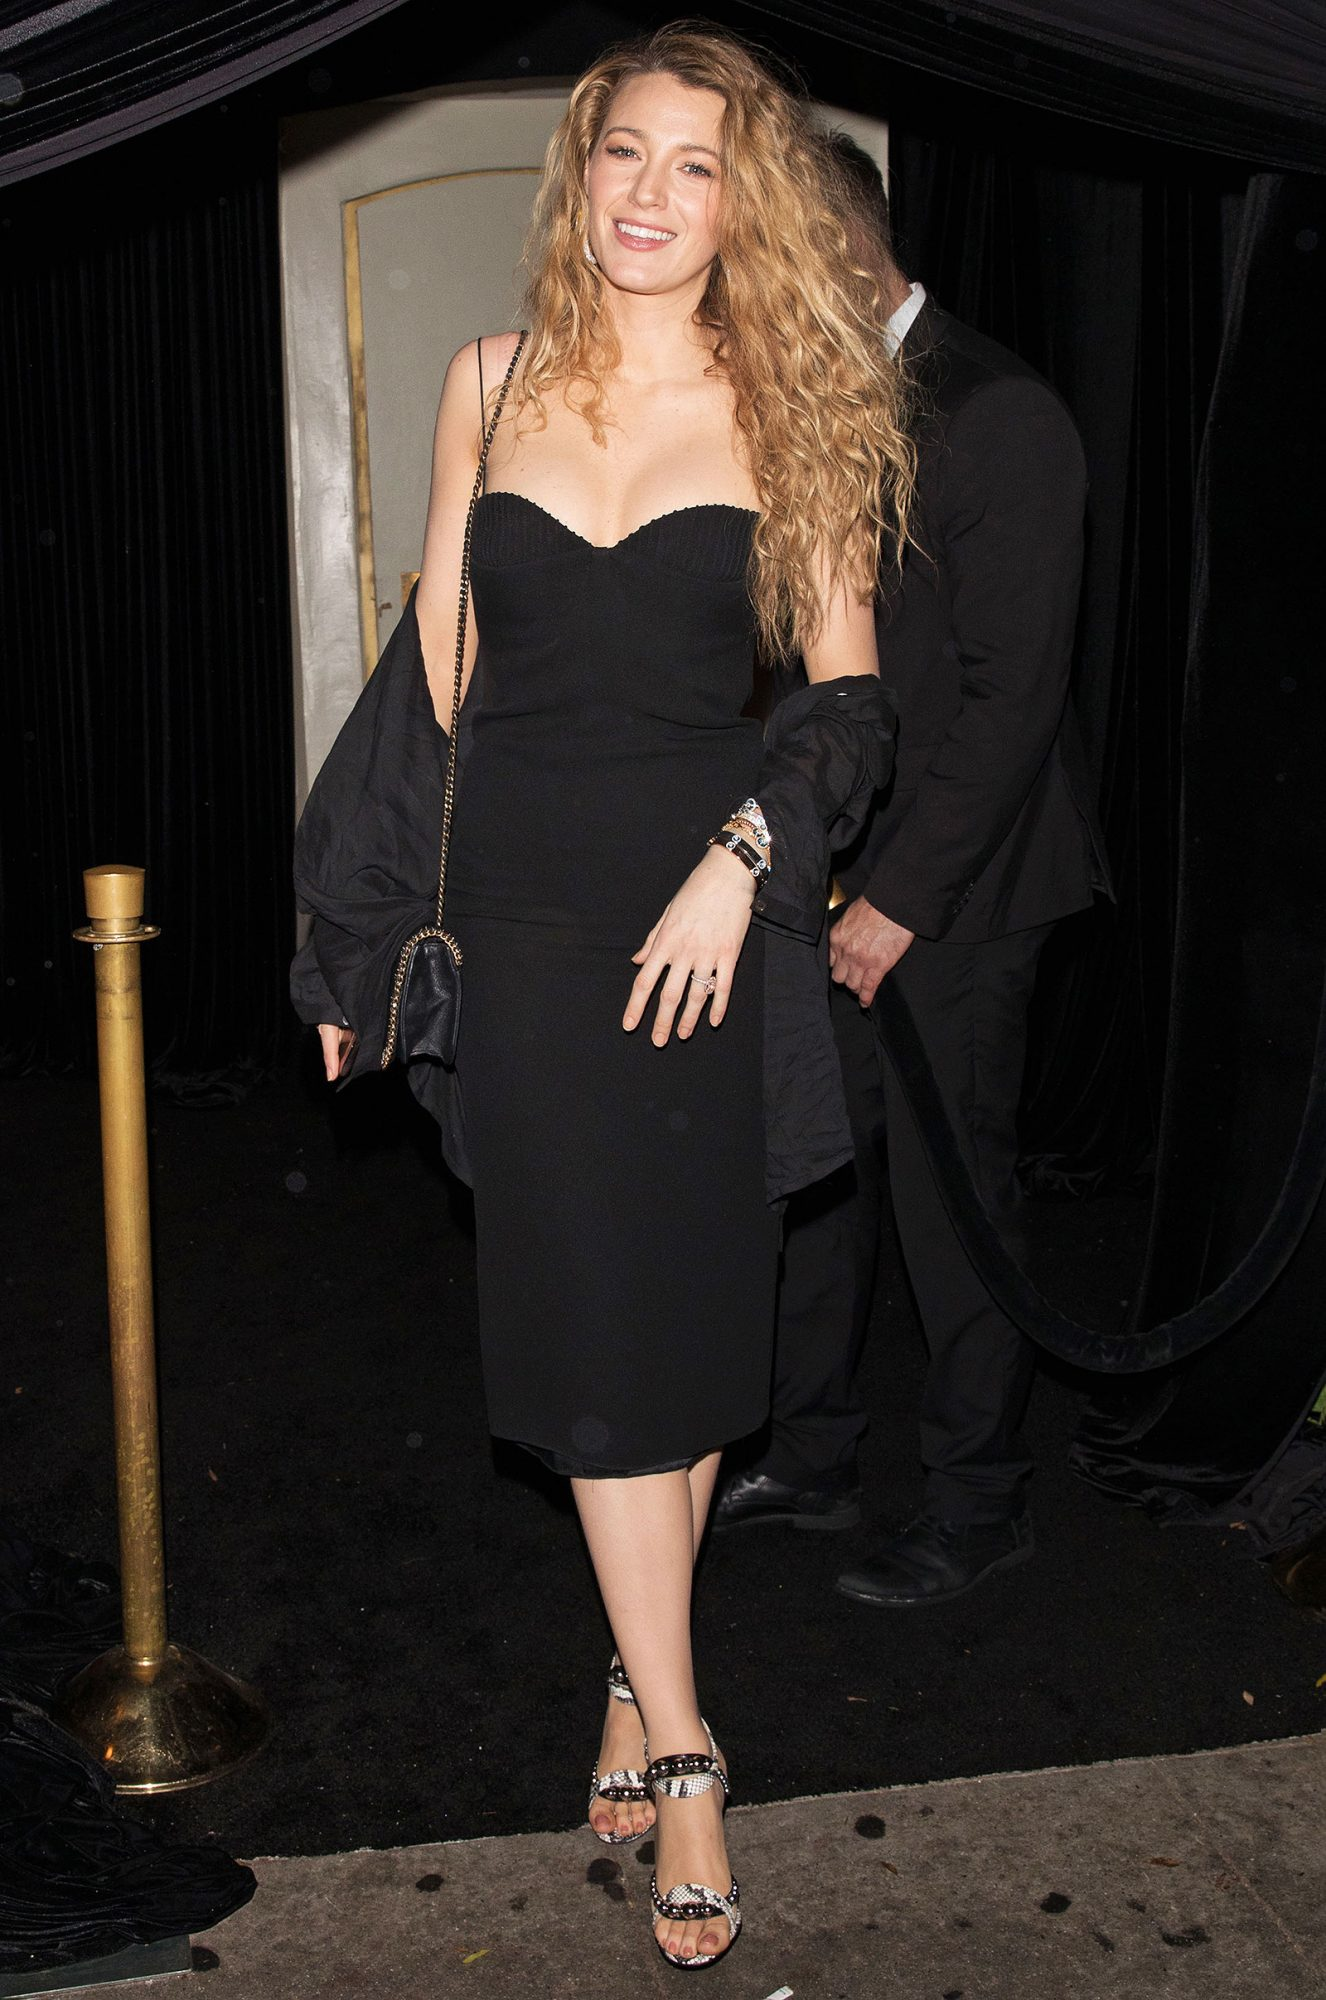 Blake Lively is seen leaving a Lorraine Schwartz event at Delilah in West Hollywood